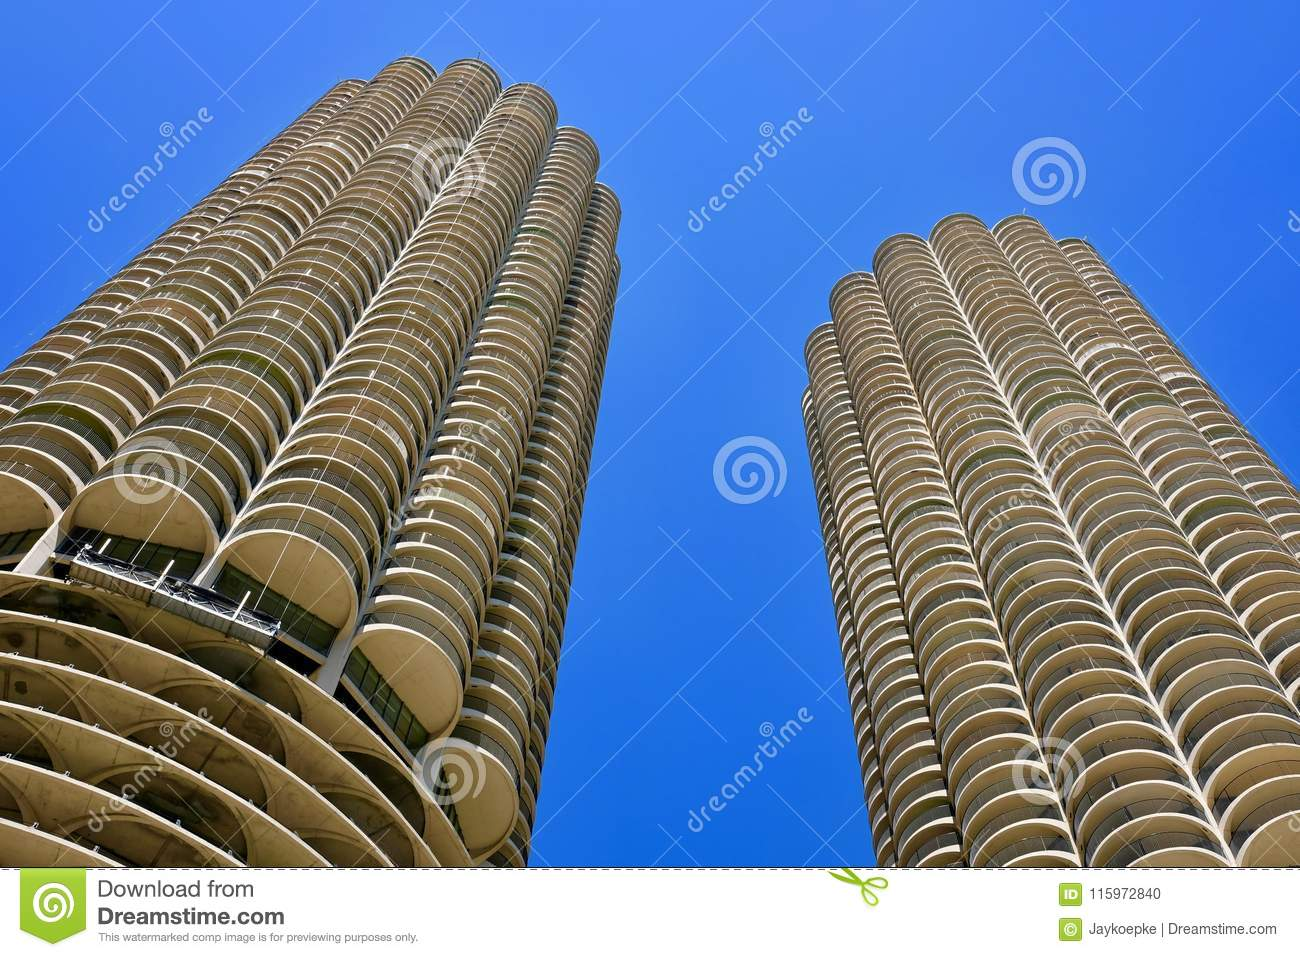 Mening van Marina City Corncob Towers, Chicago van onderaan